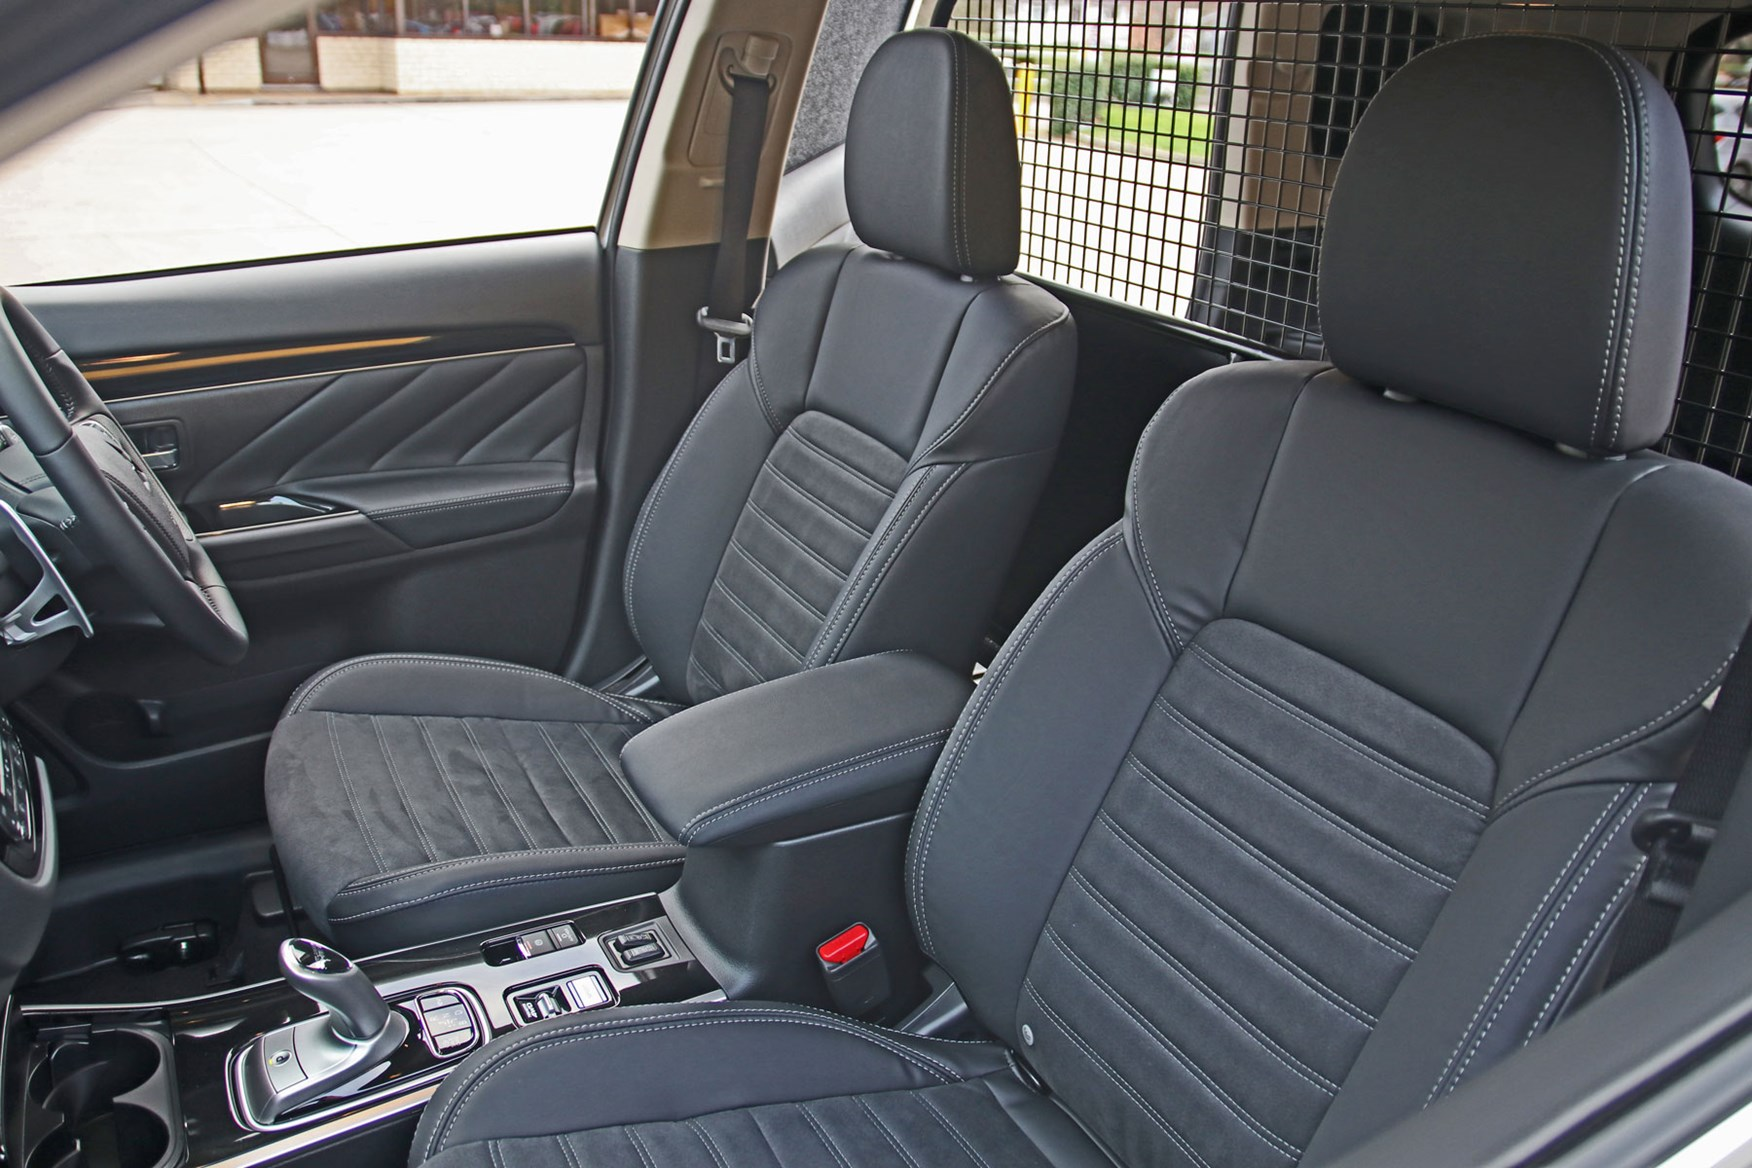 Mitsubishi Outlander Commercial 4x4 van review - seats